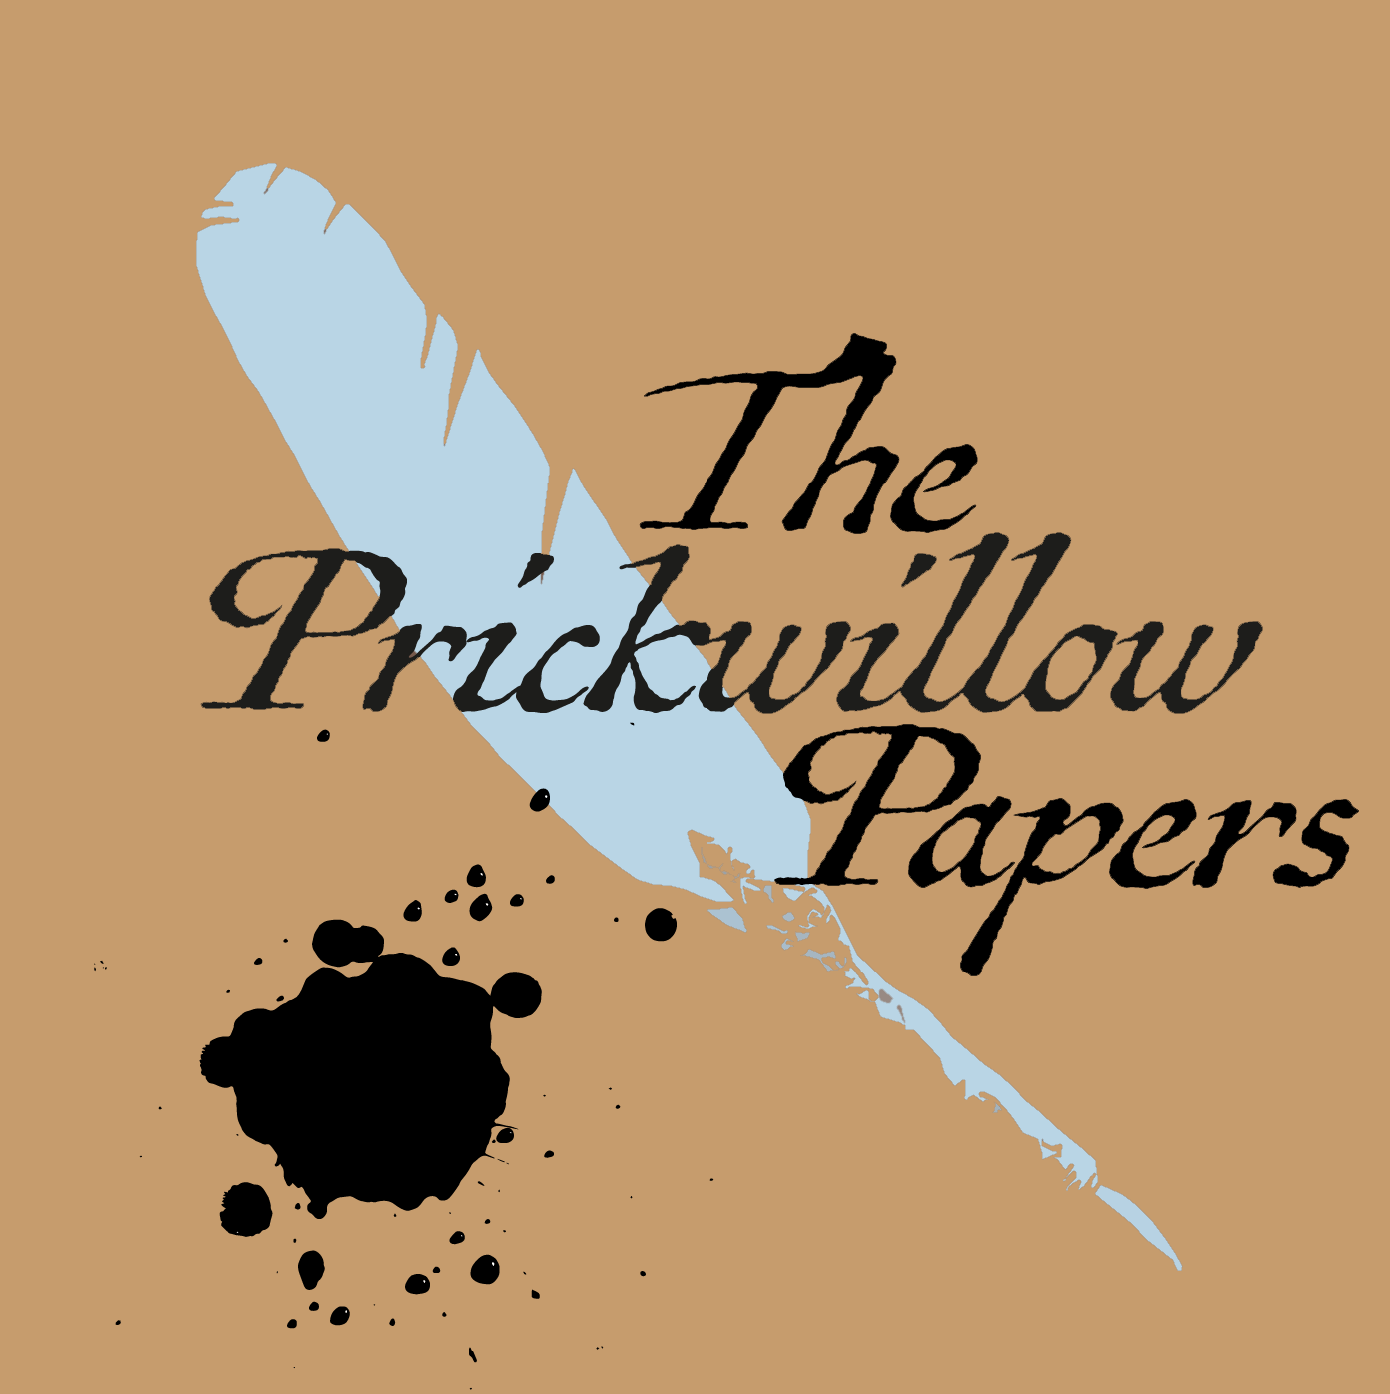 The Prickwillow Papers Podcast